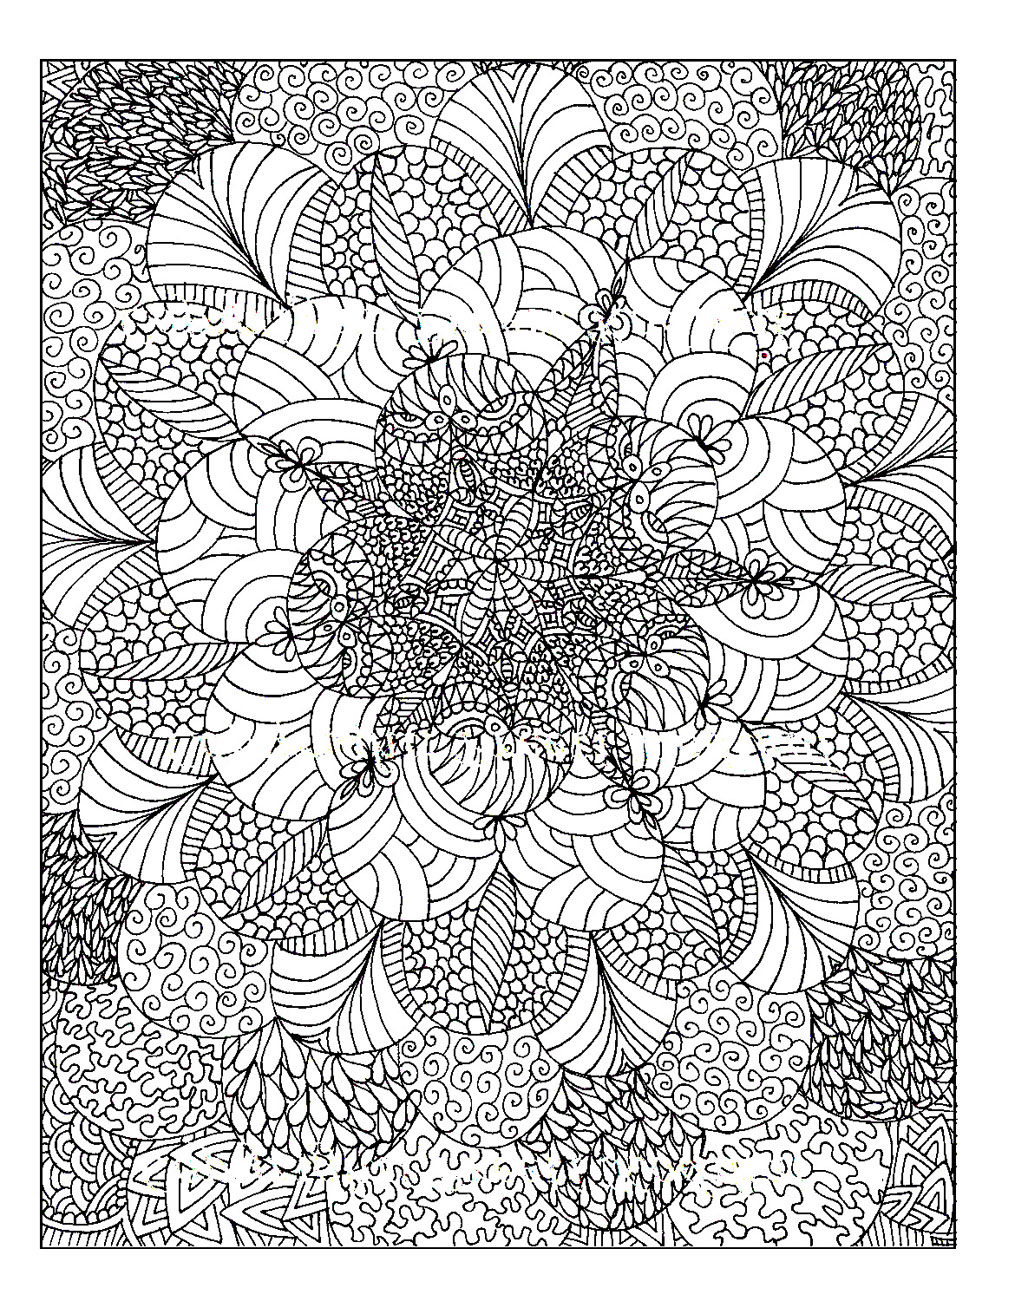 Colouring For Adults Anti Stress Colouring Printables Printable Coloring Pages Adults